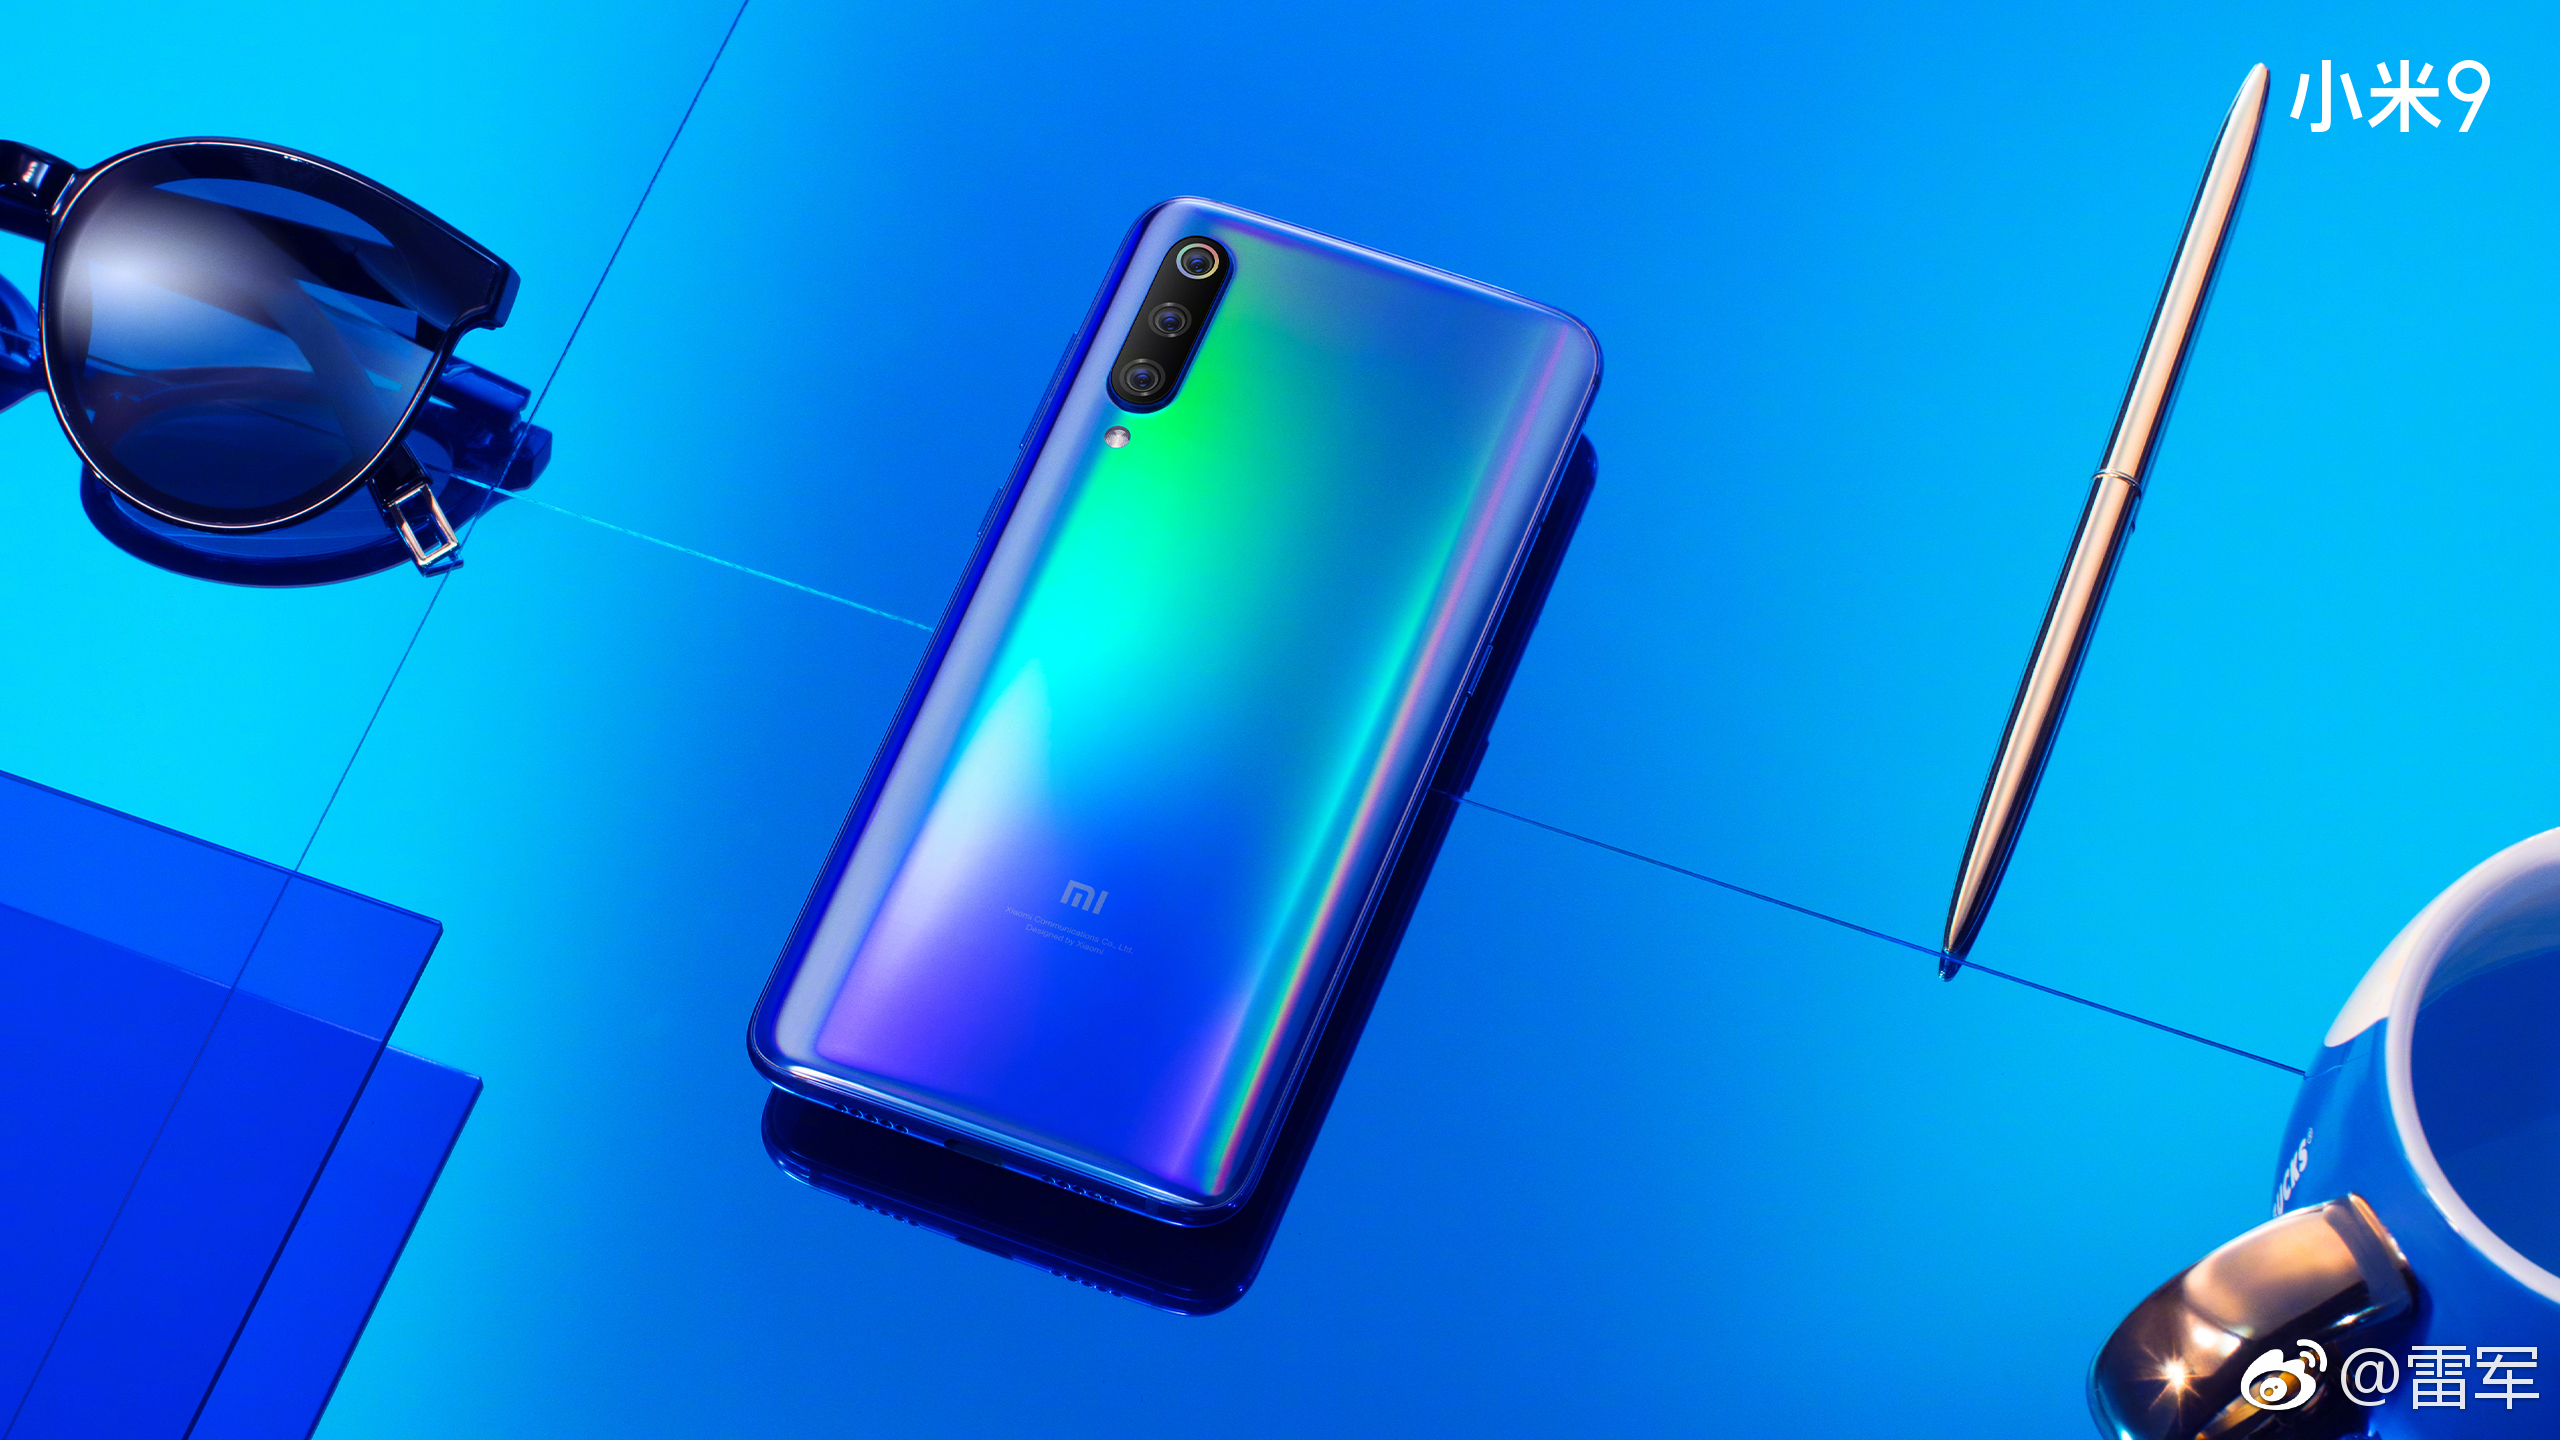 Xiaomi Vice President Wang Xiang Shares More Details About Upcoming Mi 9